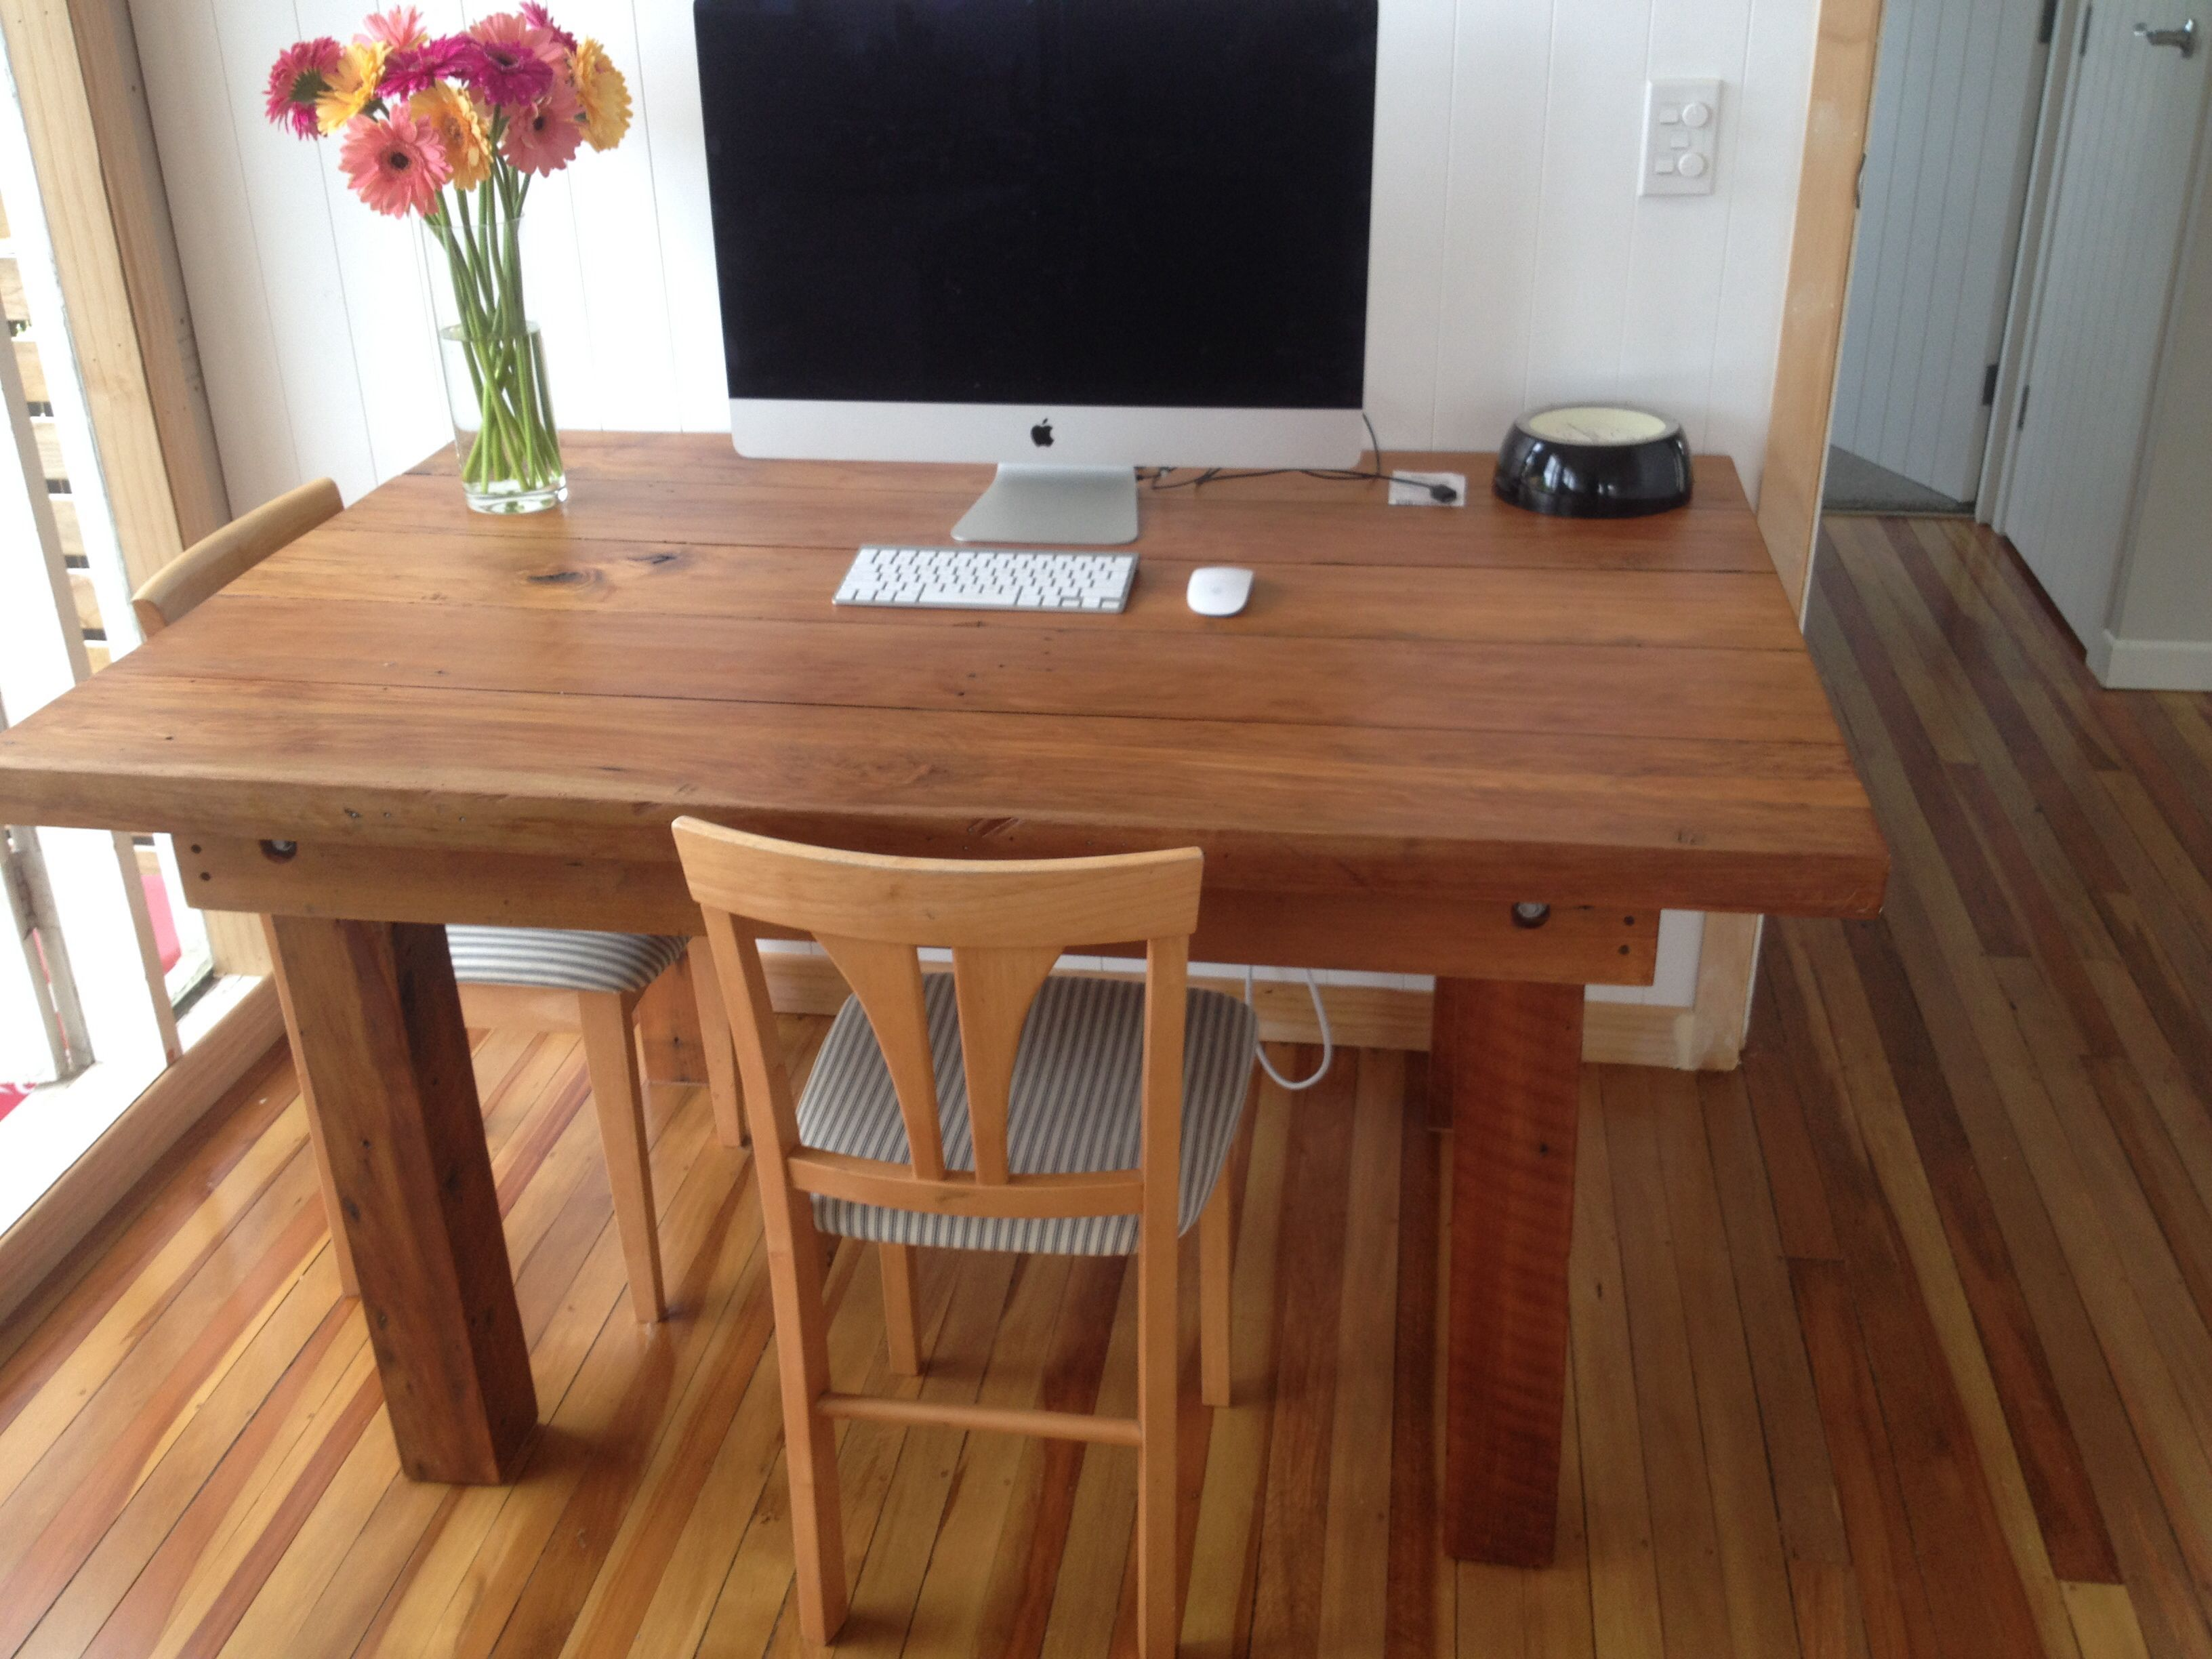 Native New Zealand Upcycled Rimu And Kauri Dining Table Saved All The Timber